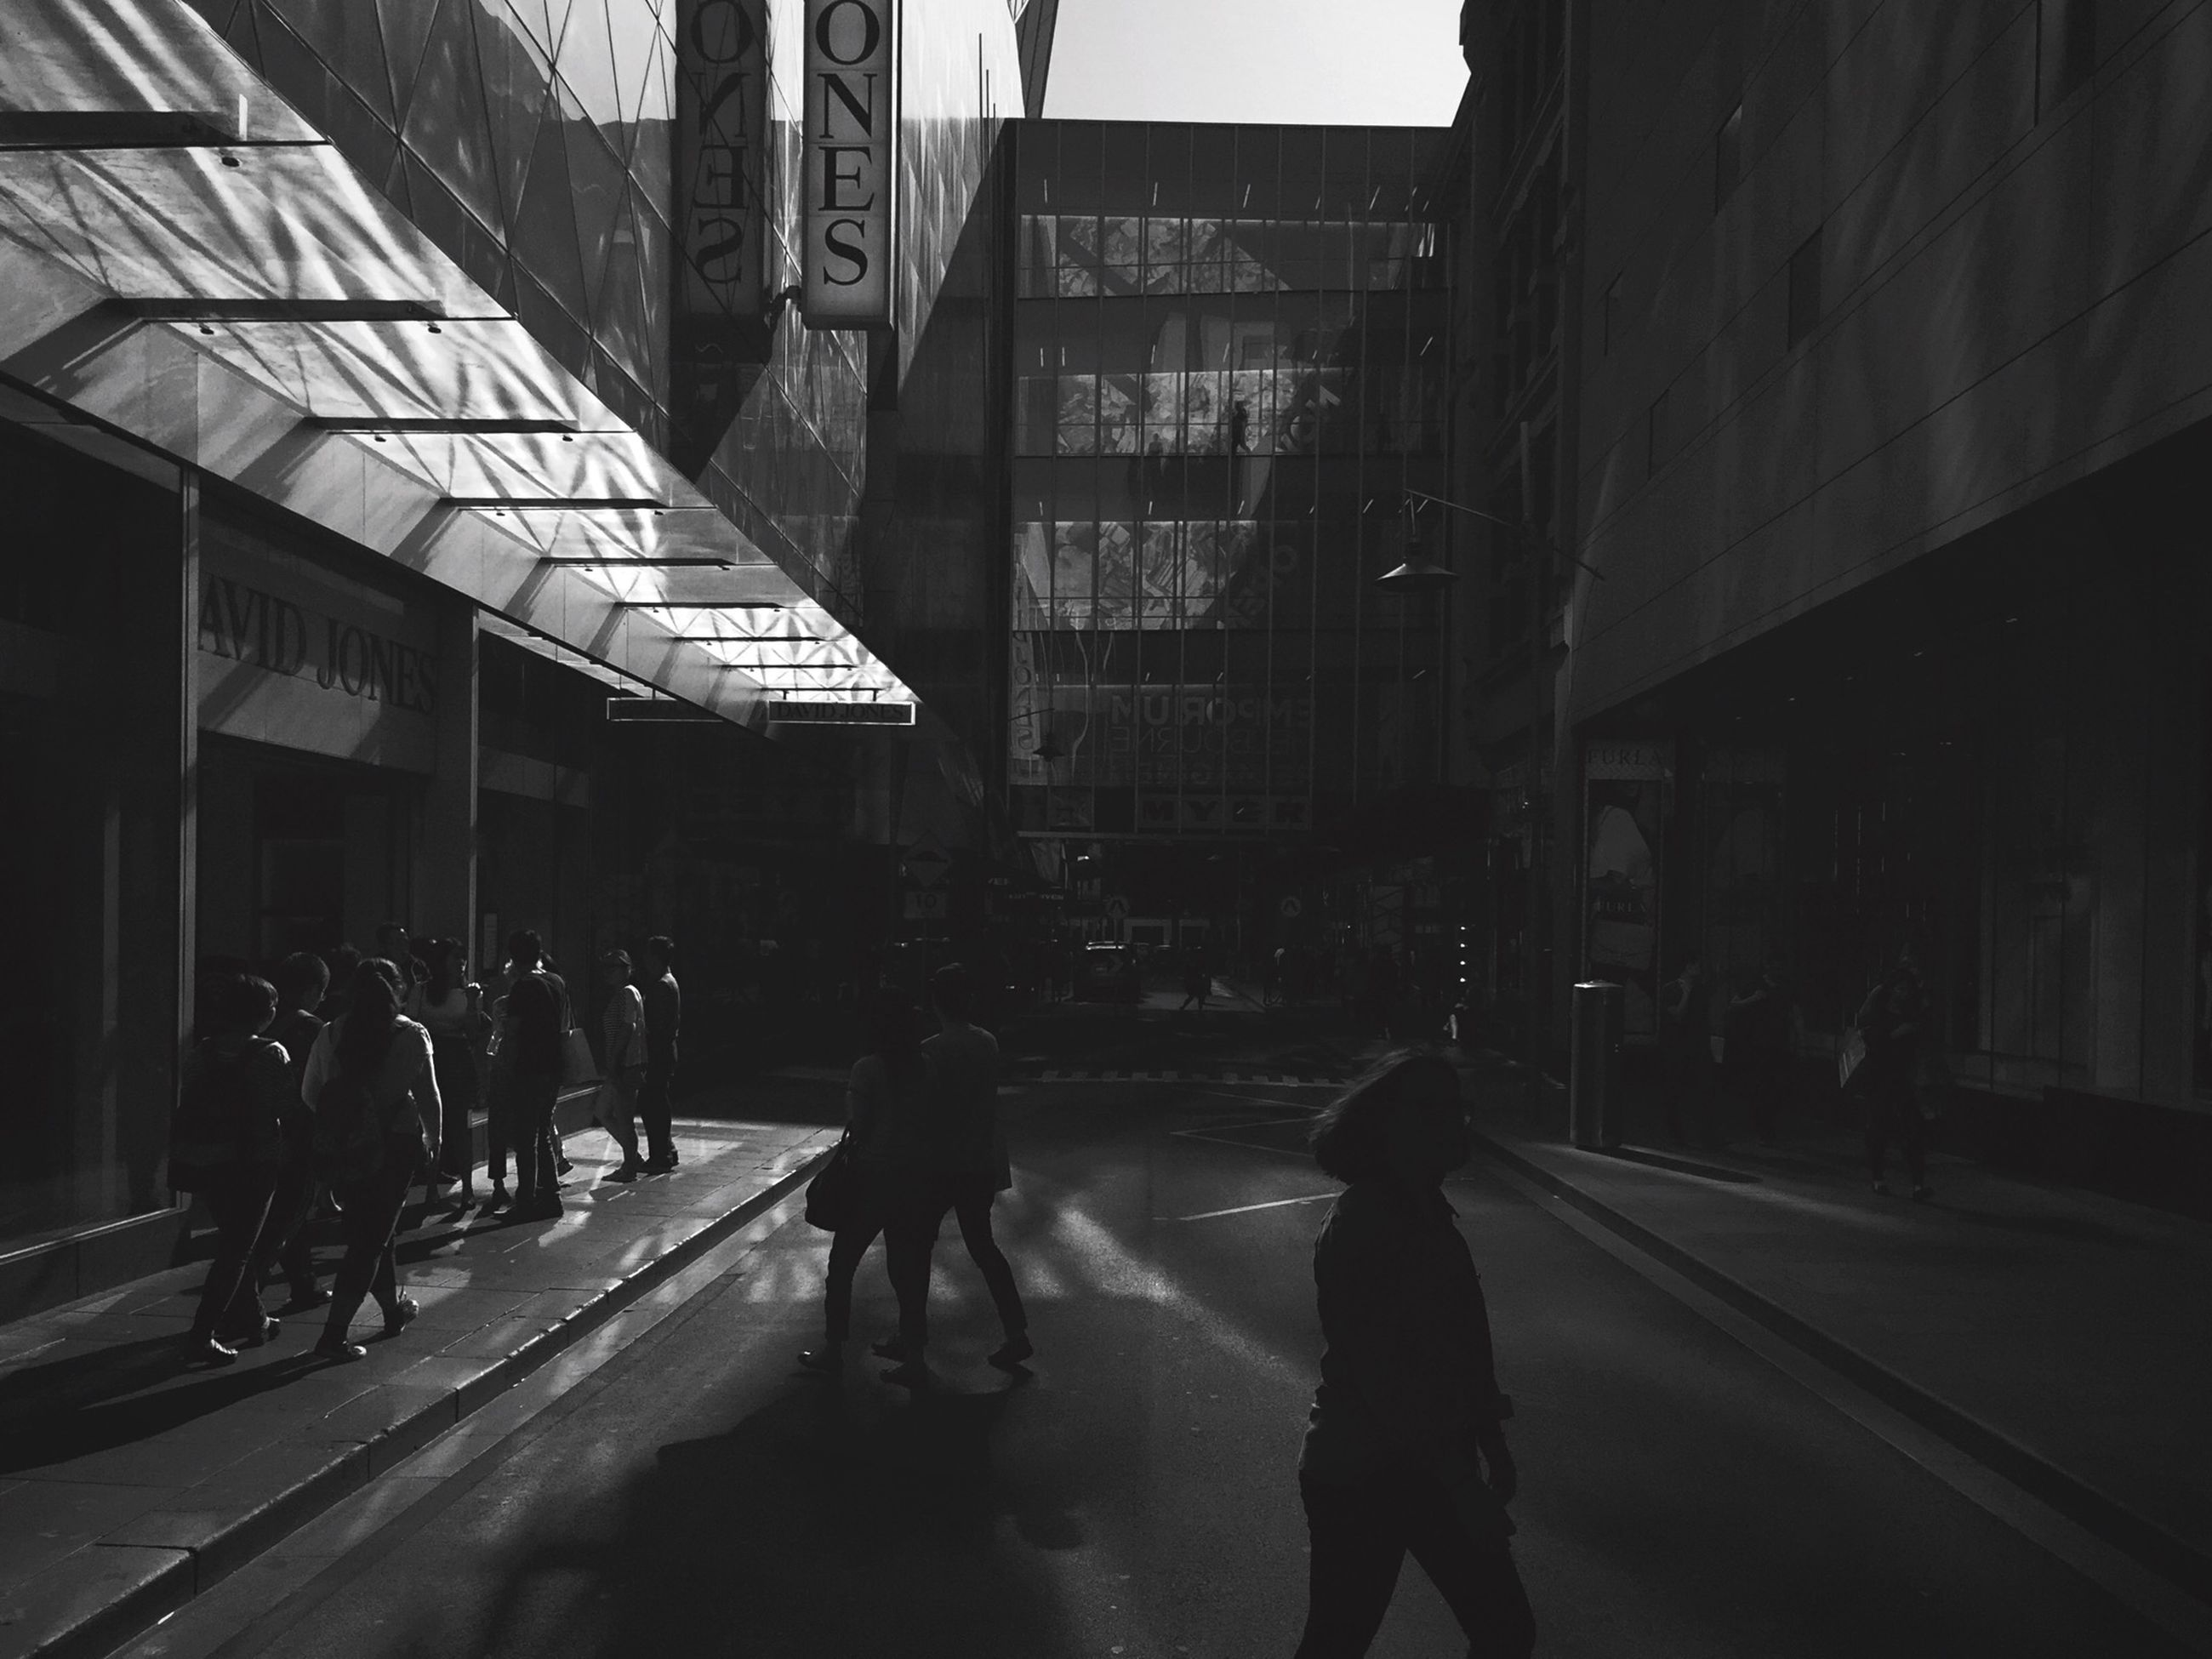 building exterior, architecture, built structure, city, street, walking, city life, transportation, men, the way forward, city street, road, person, lifestyles, car, building, road marking, on the move, full length